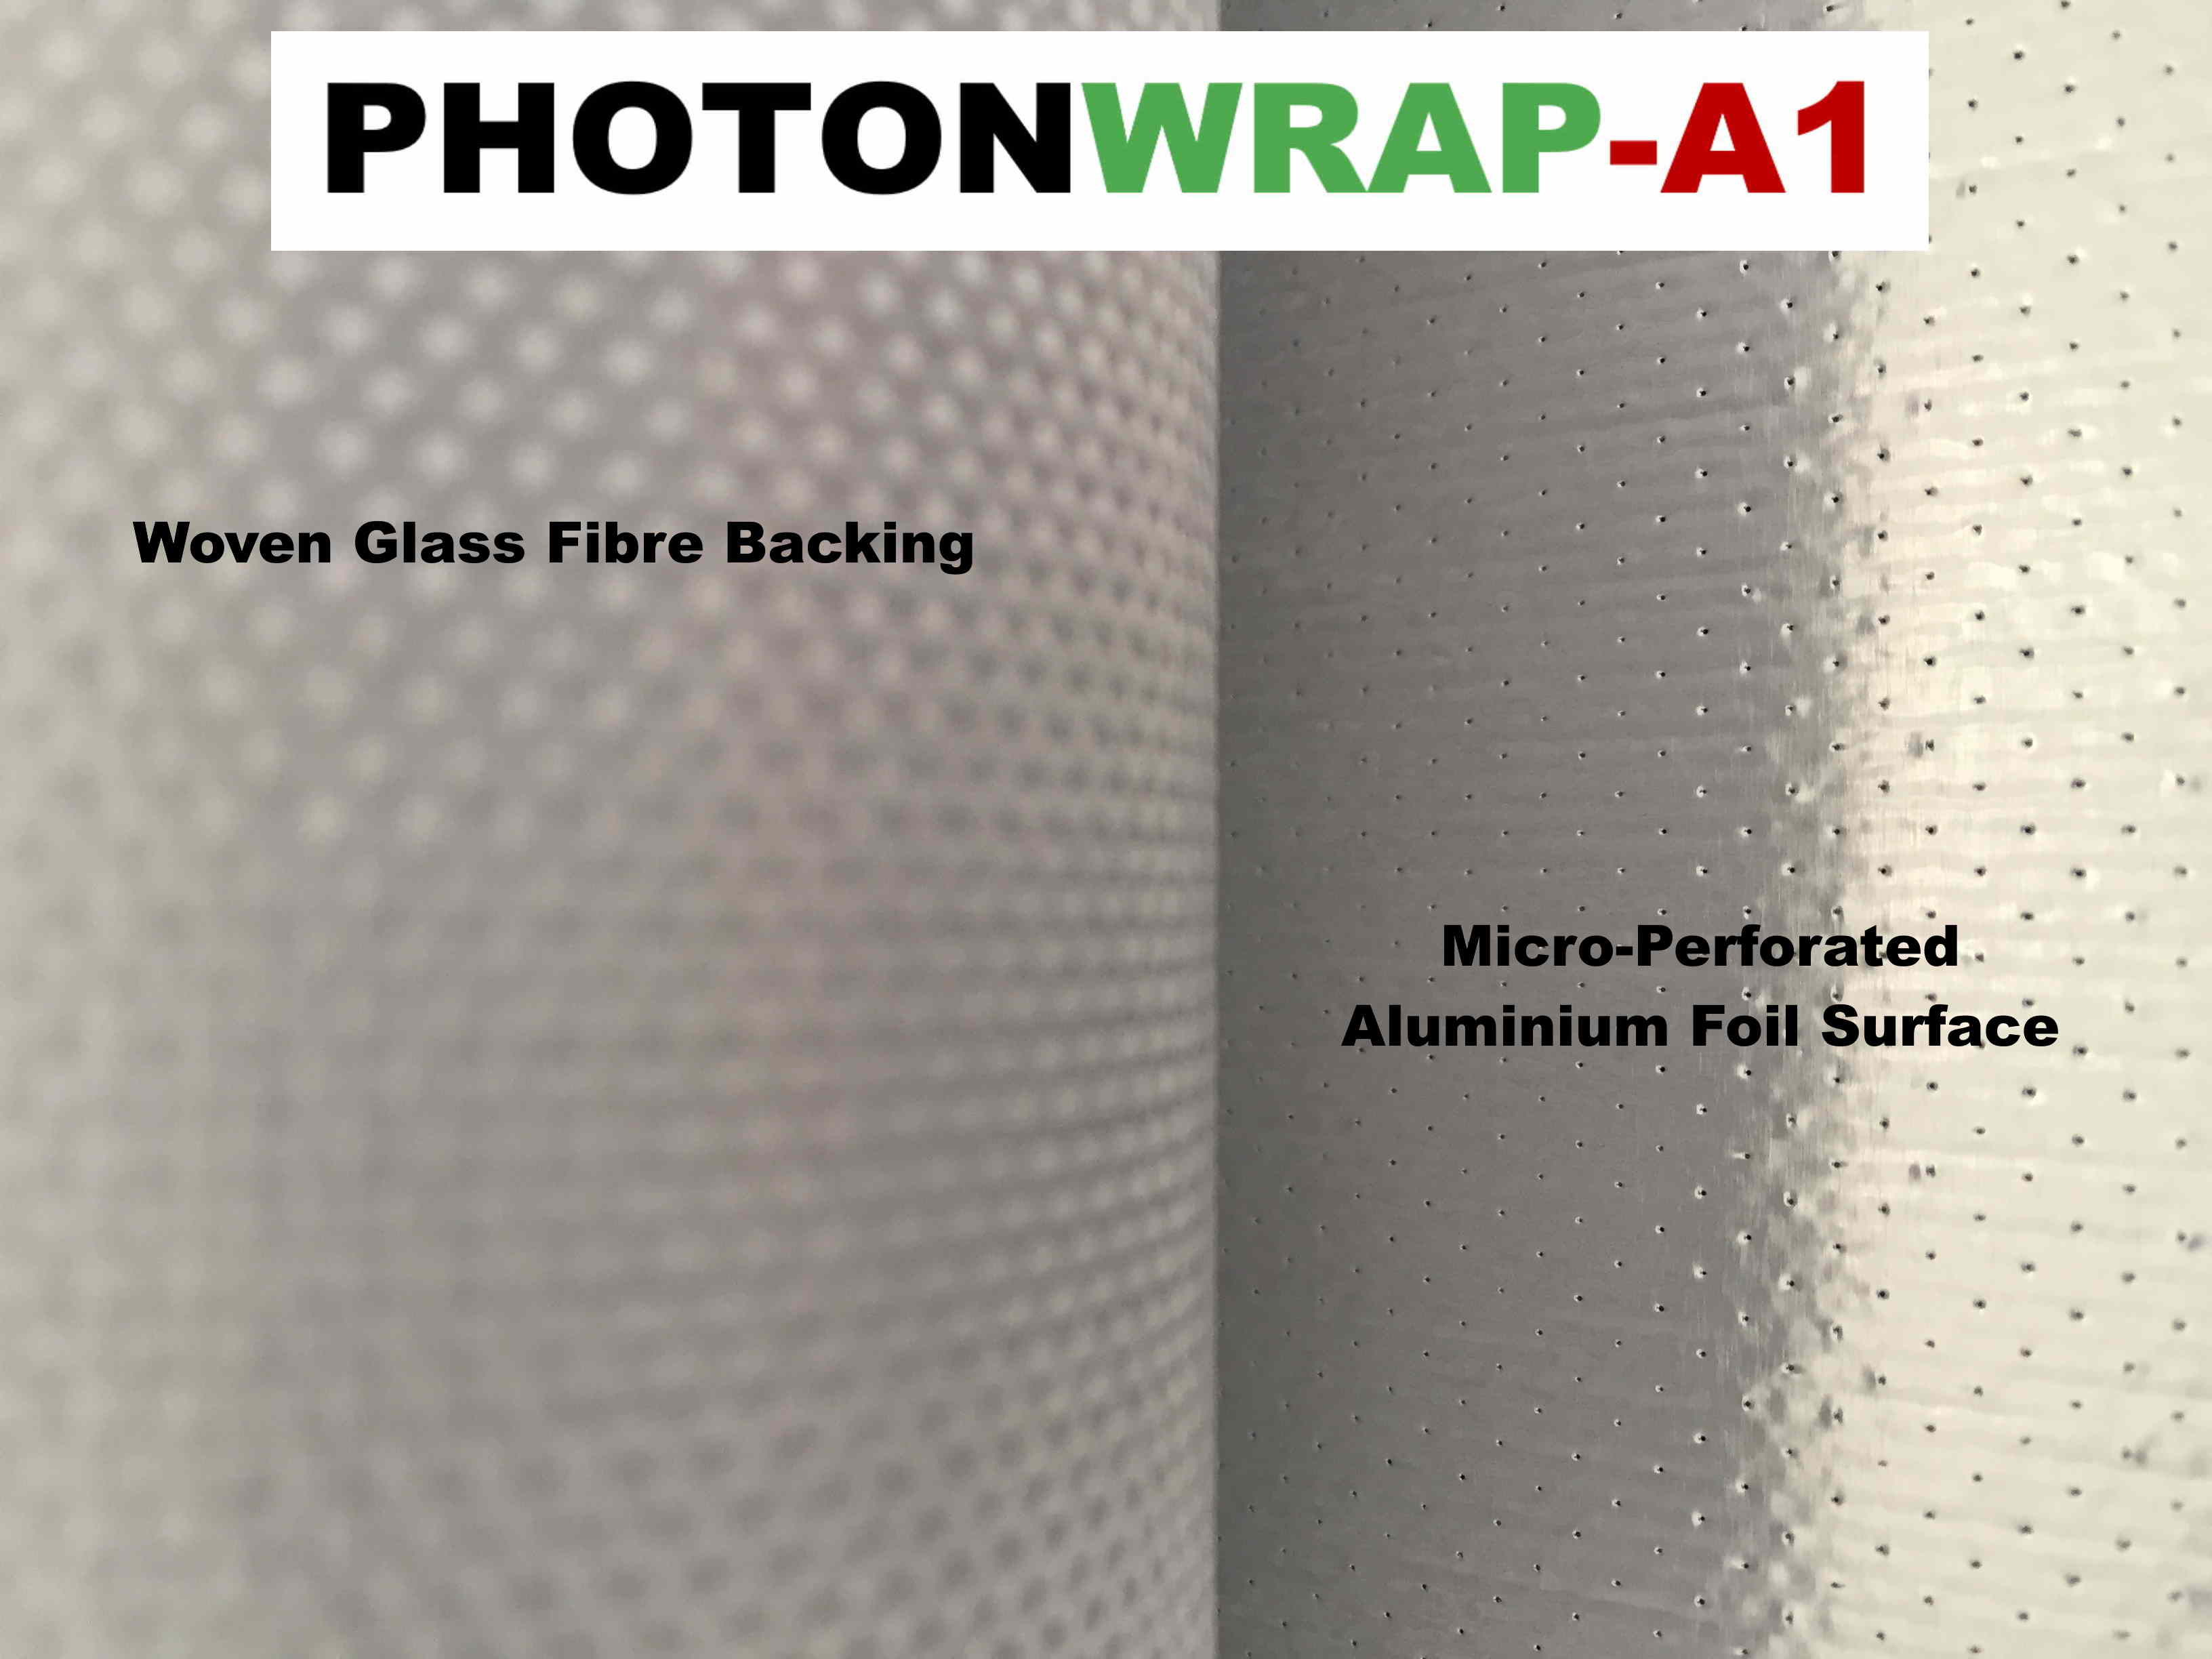 A1 PhotonWrap, Breathable W2 Reflective Insulation Membrane house wrap for timber frame walls.